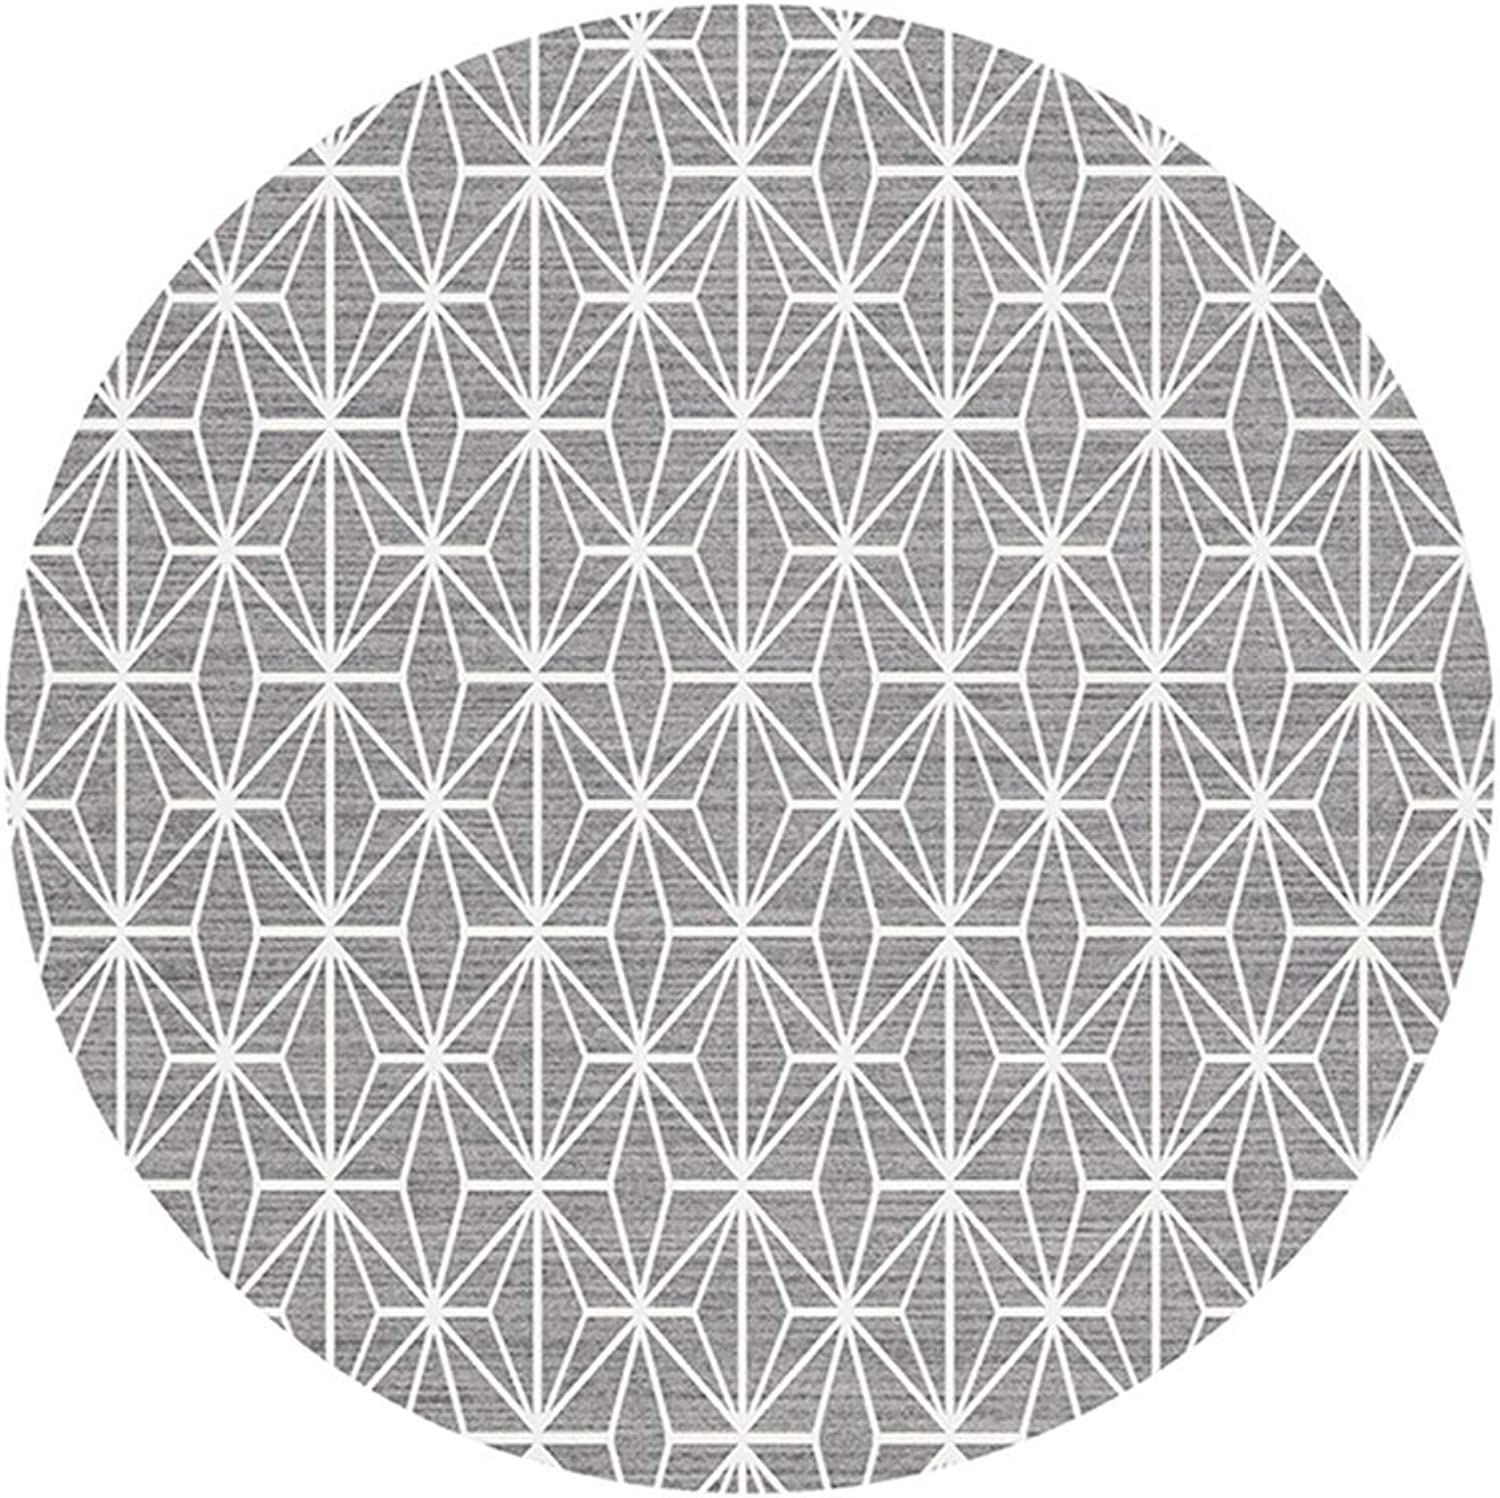 Lvdijidian Nordic Modern Style Round Carpet European Minimalist Living Room Bedroom Hanging Basket Swivel Chair Carpet Earth Weave Light Grey Doormat of Decoration (Size   Diameter-80CM)